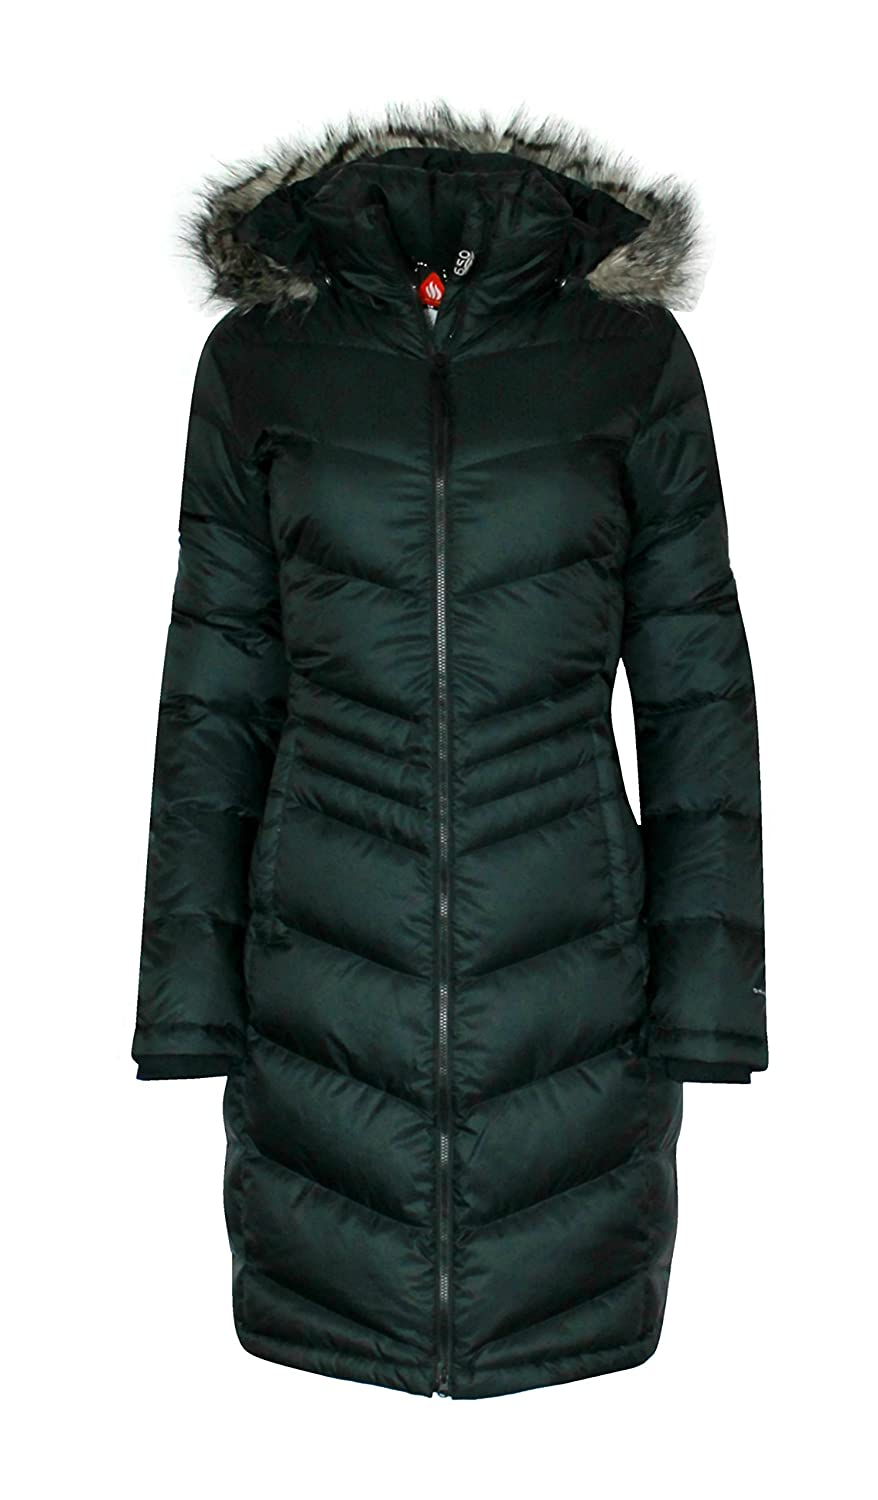 Columbia Women's Polar Freeze Long Down Jacket Omni Heat Warm Winter Coat